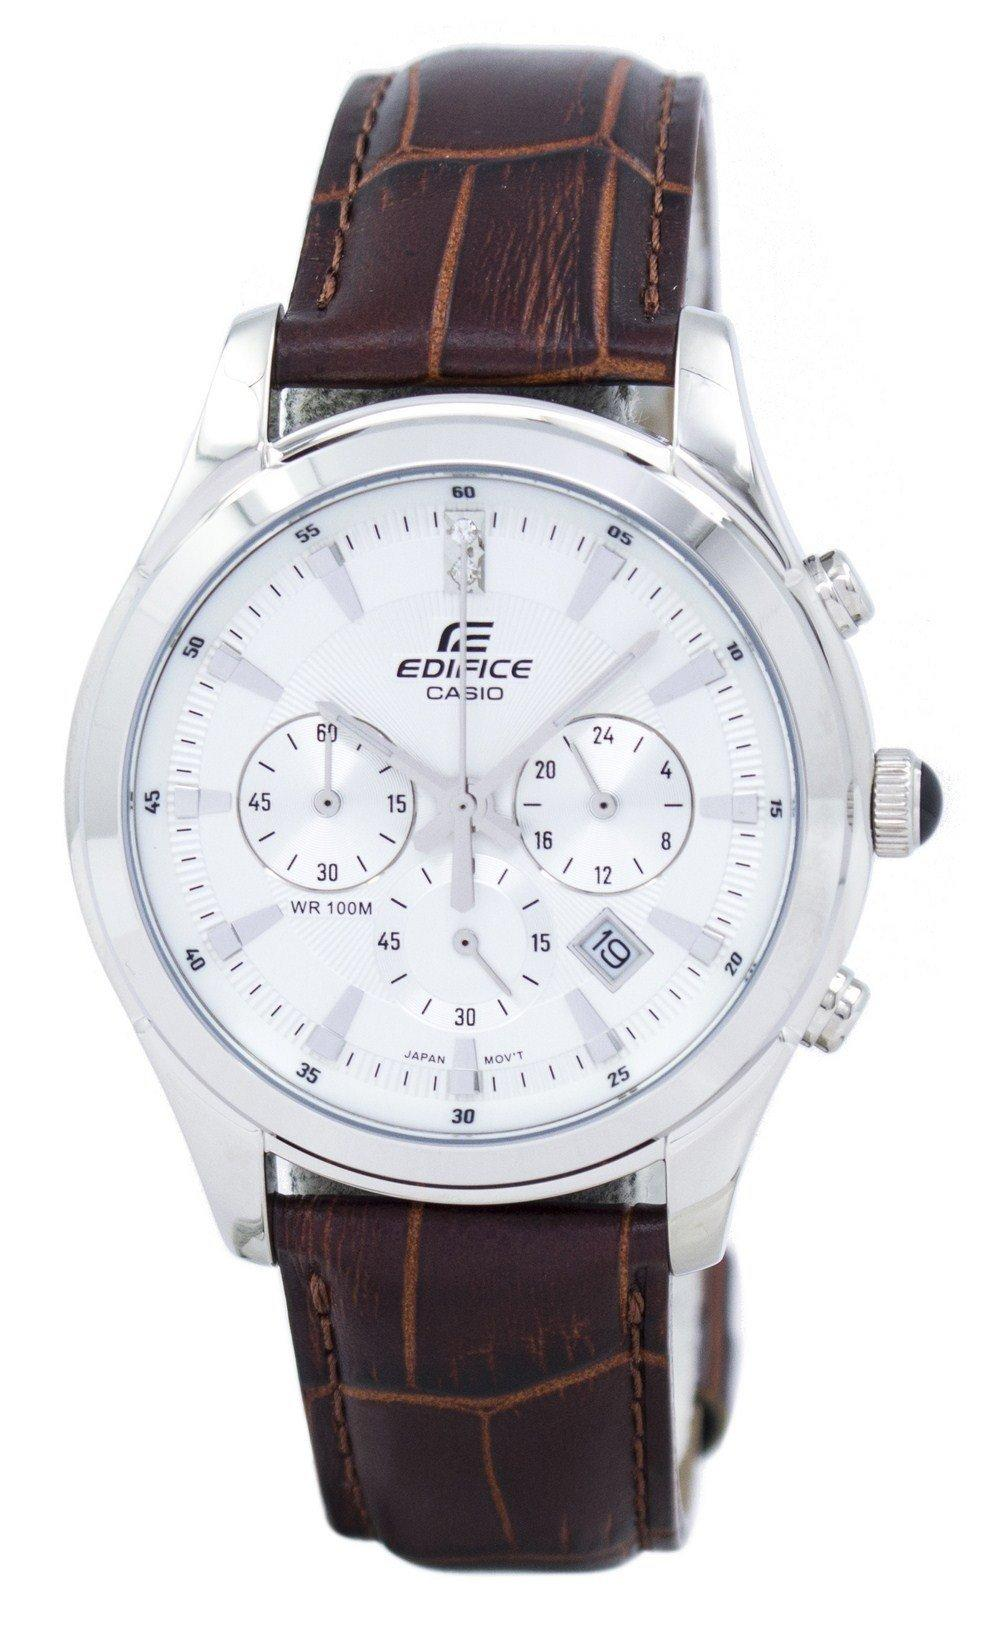 Casio Edifice Chronograph Efr-517l-7av Efr517l-7av Men's Watch